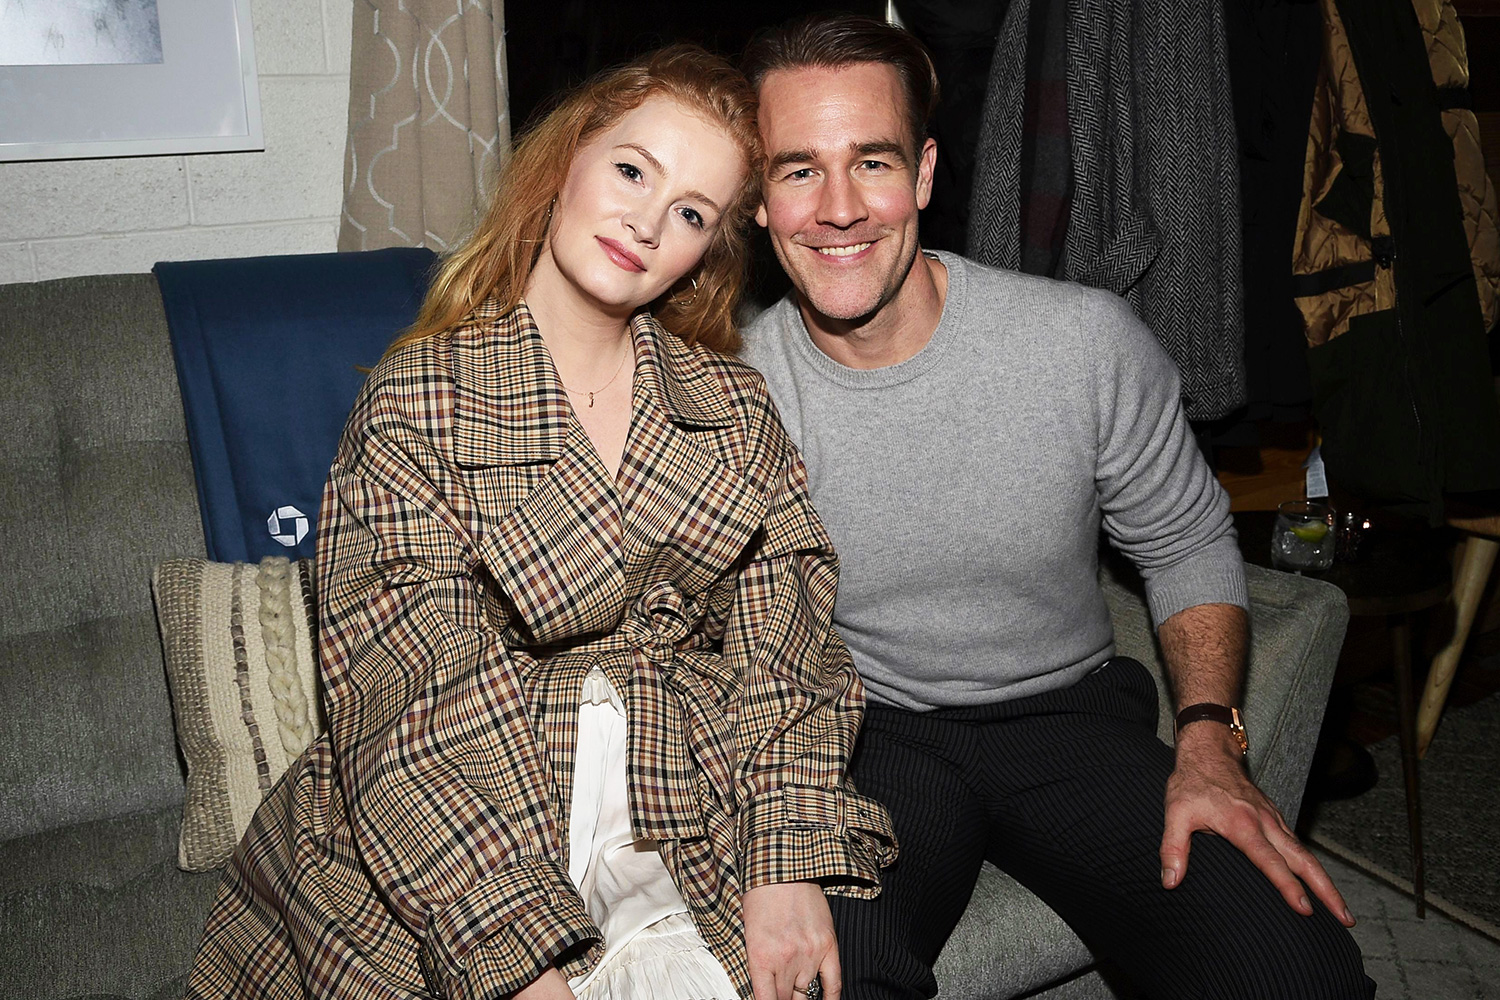 """Kimberly Van Der Beek, James Van Der Beek. IMAGE DISTRIBUTED FOR CHASE SAPPHIRE - Actor James Van Der Beek and wife Kimberly Van Der Beek at the """"Bad Hair"""" after party at Chase Sapphire on Main during the Sundance Film Festival 2020, in Park City, Utah """"Bad Hair"""" Cast Party Hosted by Chase Sapphire, Park City, USA - 23 Jan 2020"""